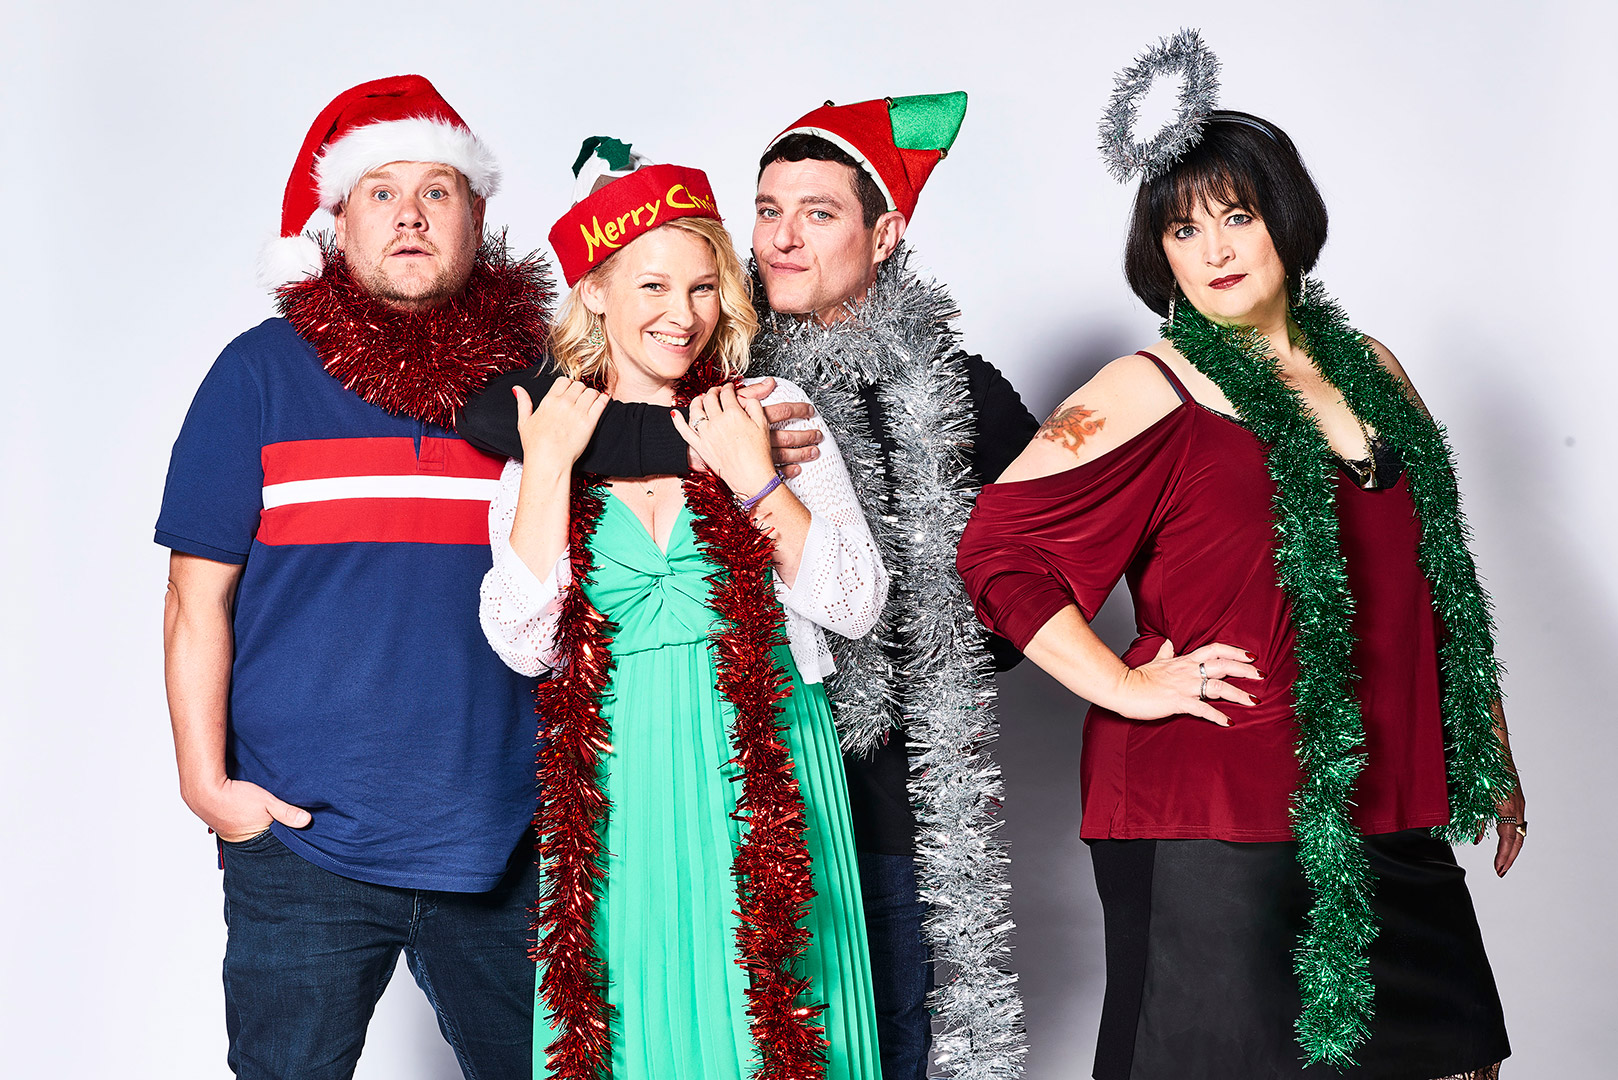 Gavin and stacey christmas special cast mathew horne